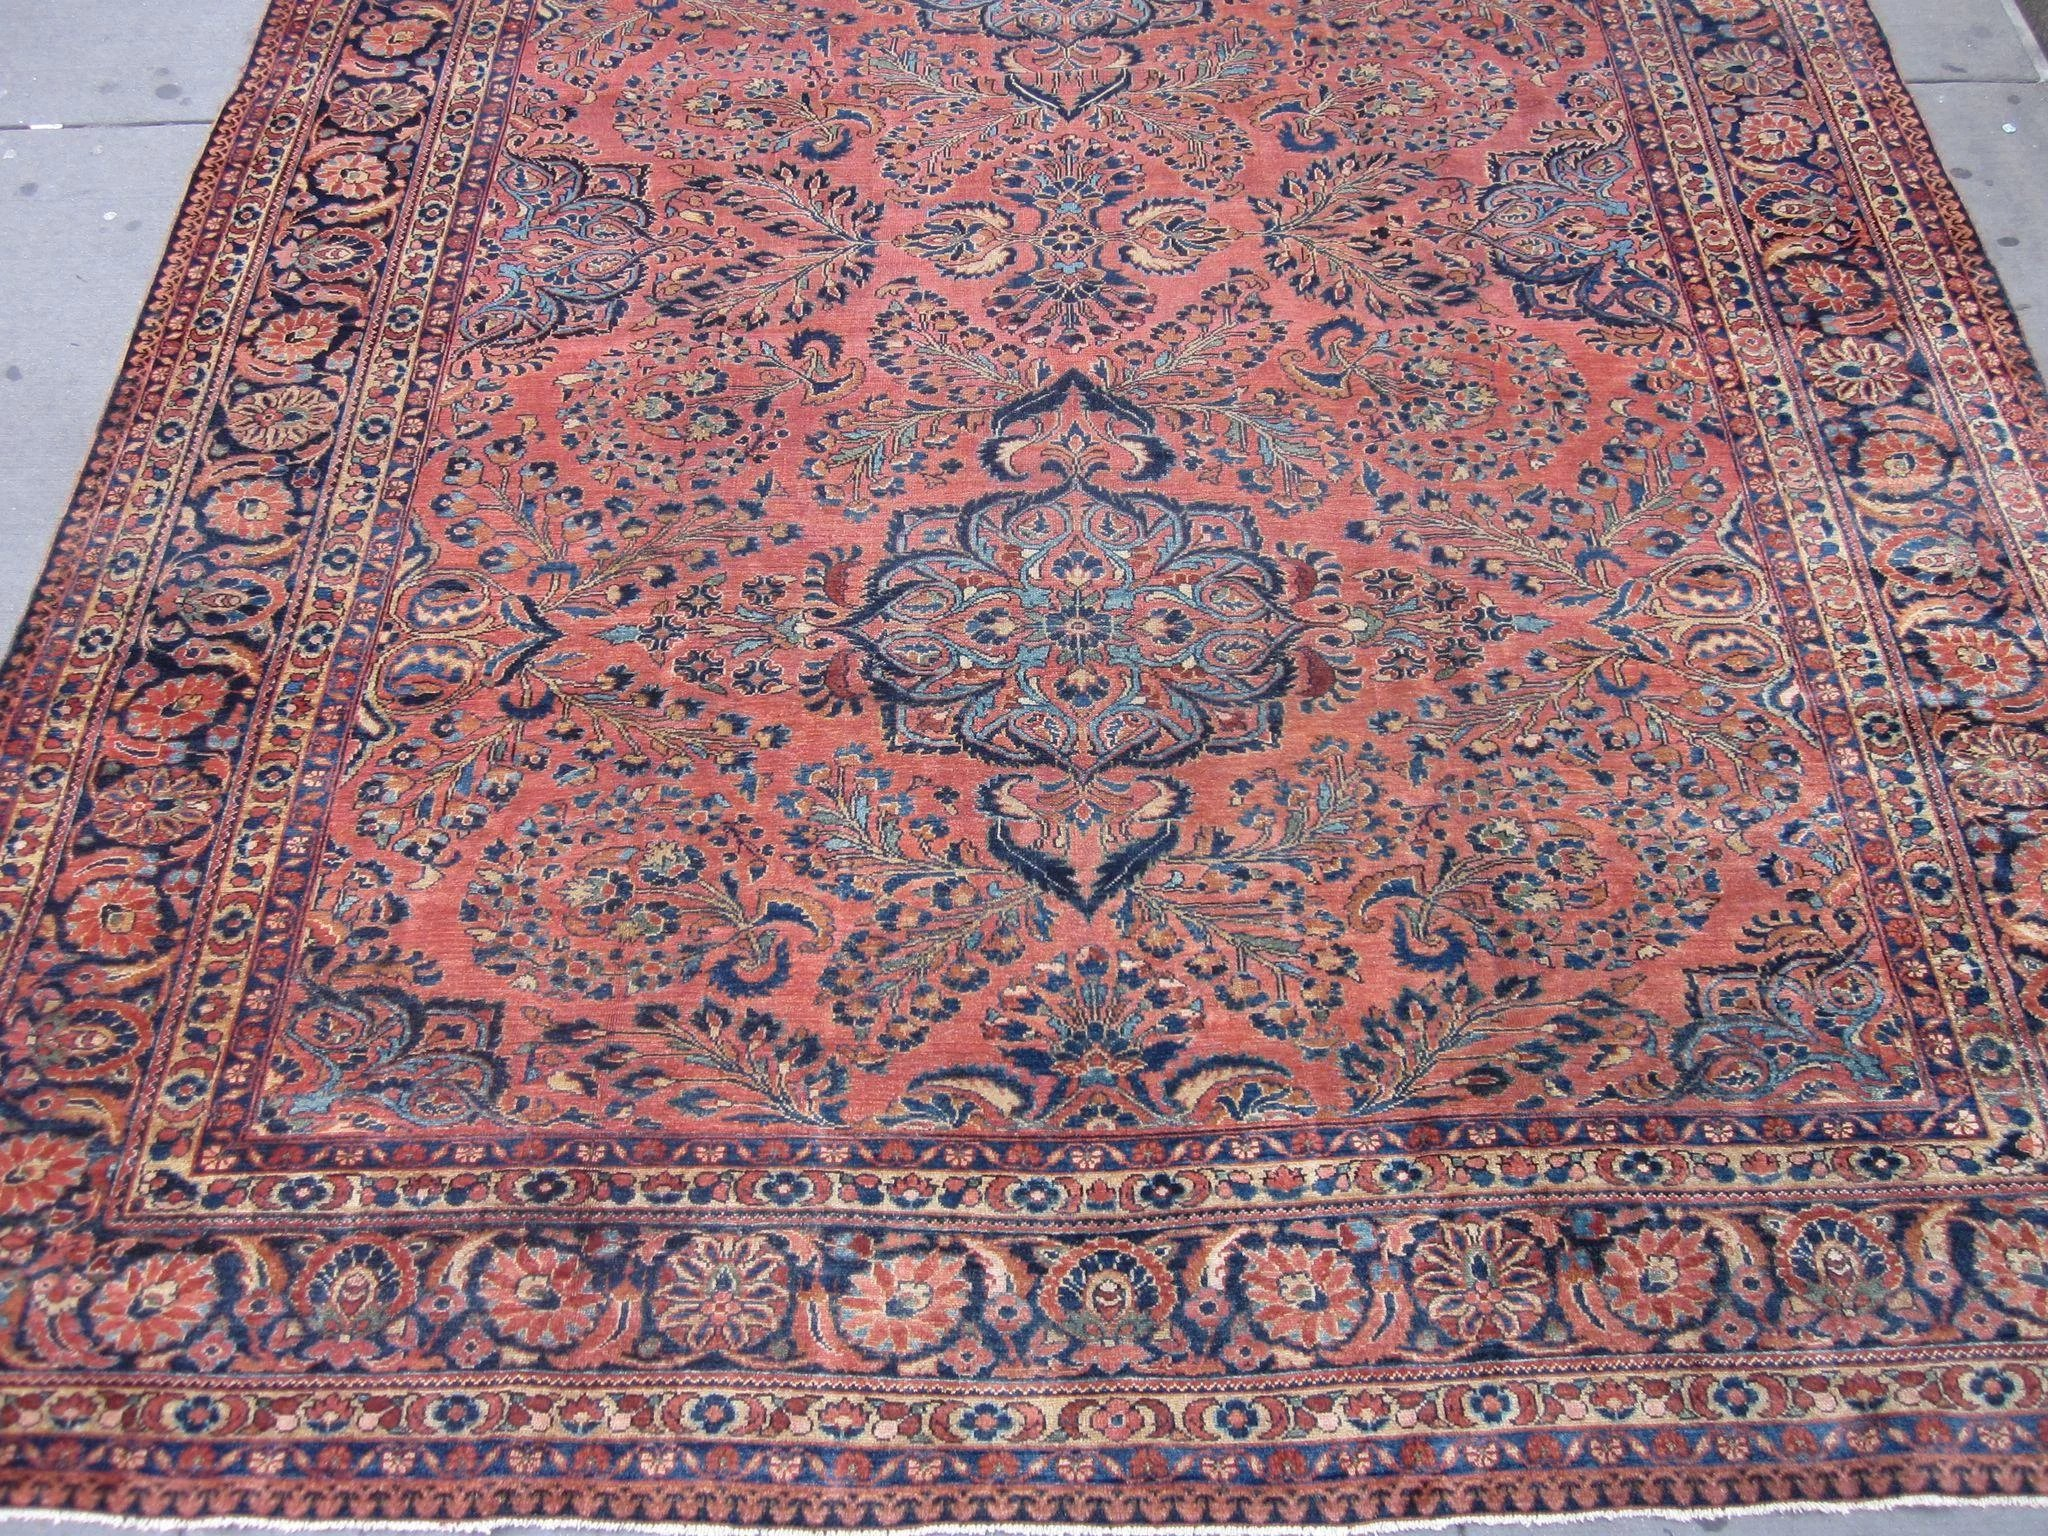 1920 S Lilian Carpet Hamadan Area West Persia 11 9 X